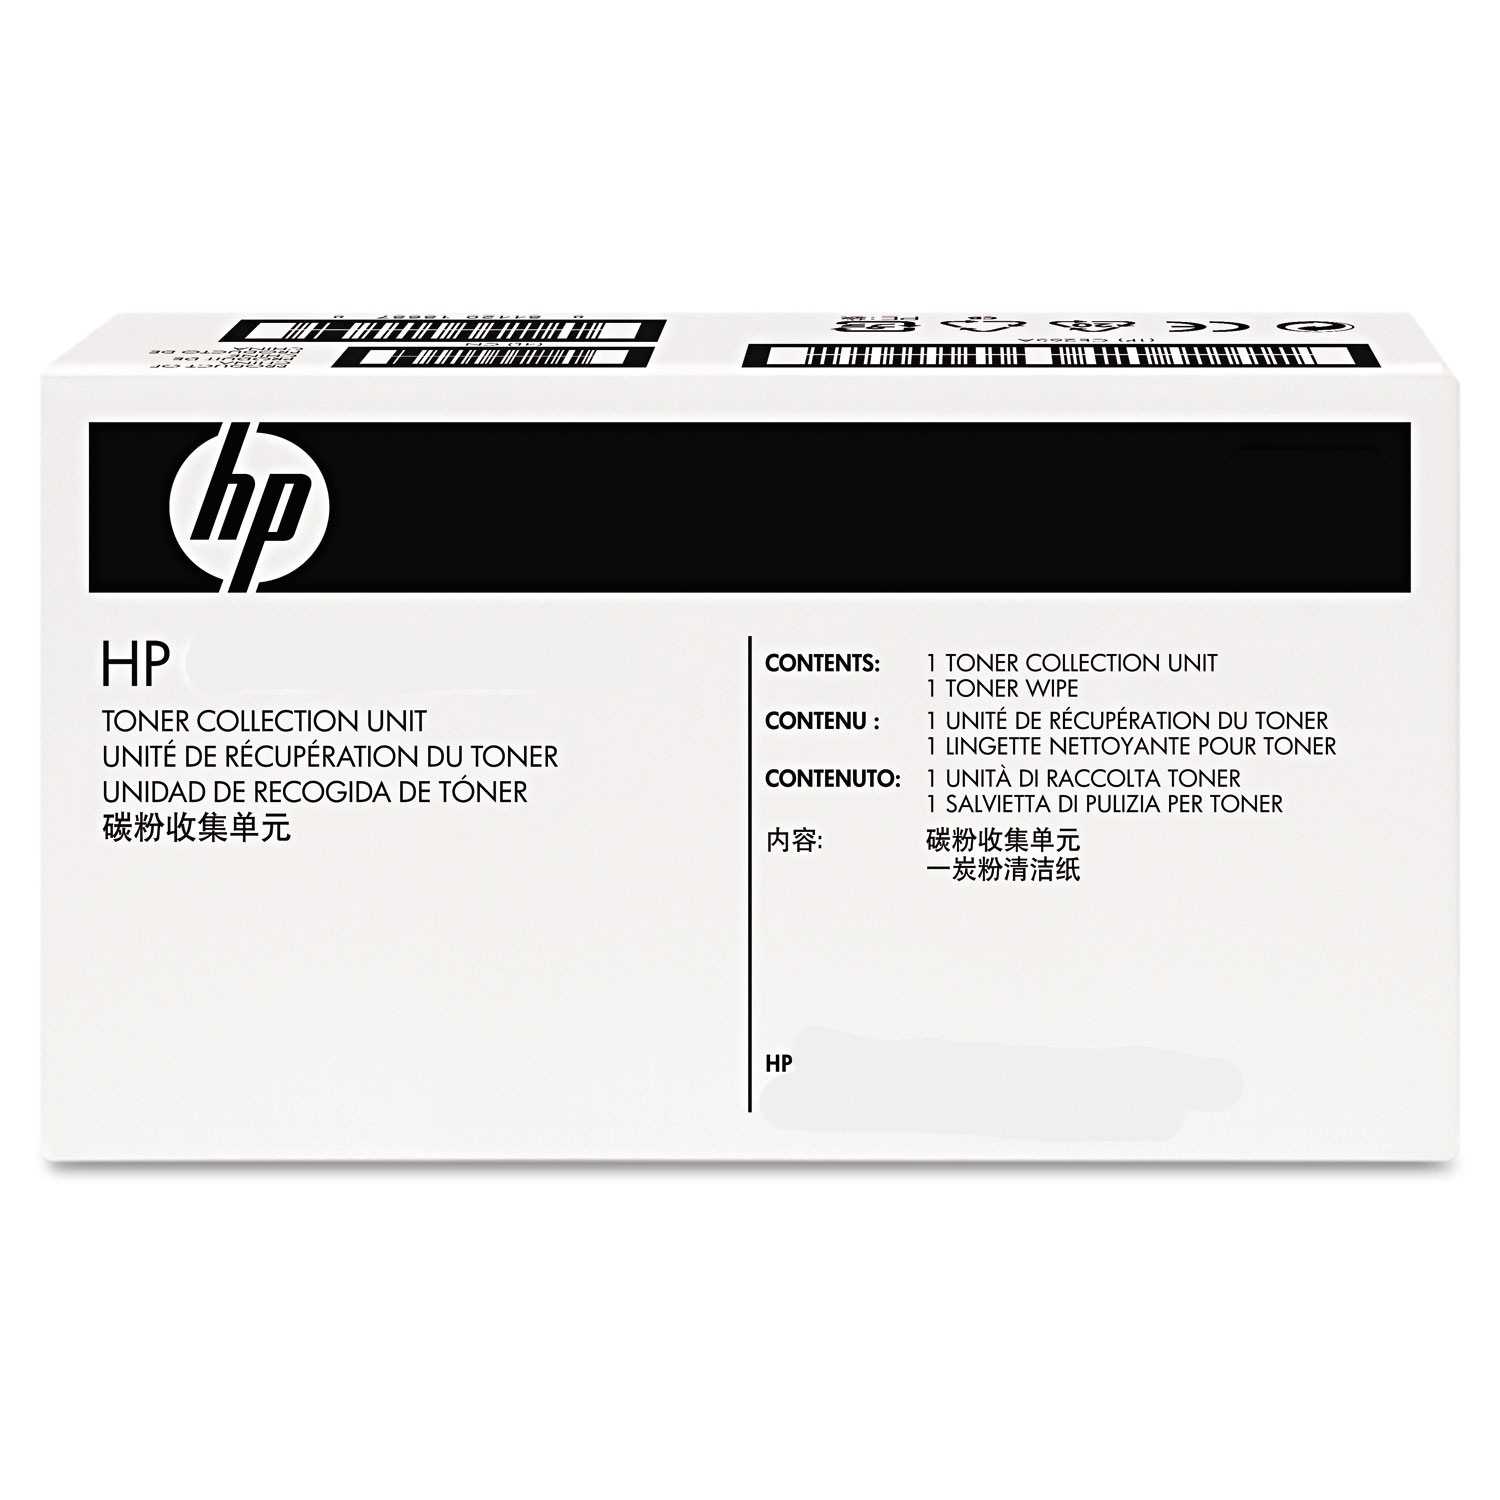 CE980A Toner Collection Unit by HP HEWCE980A